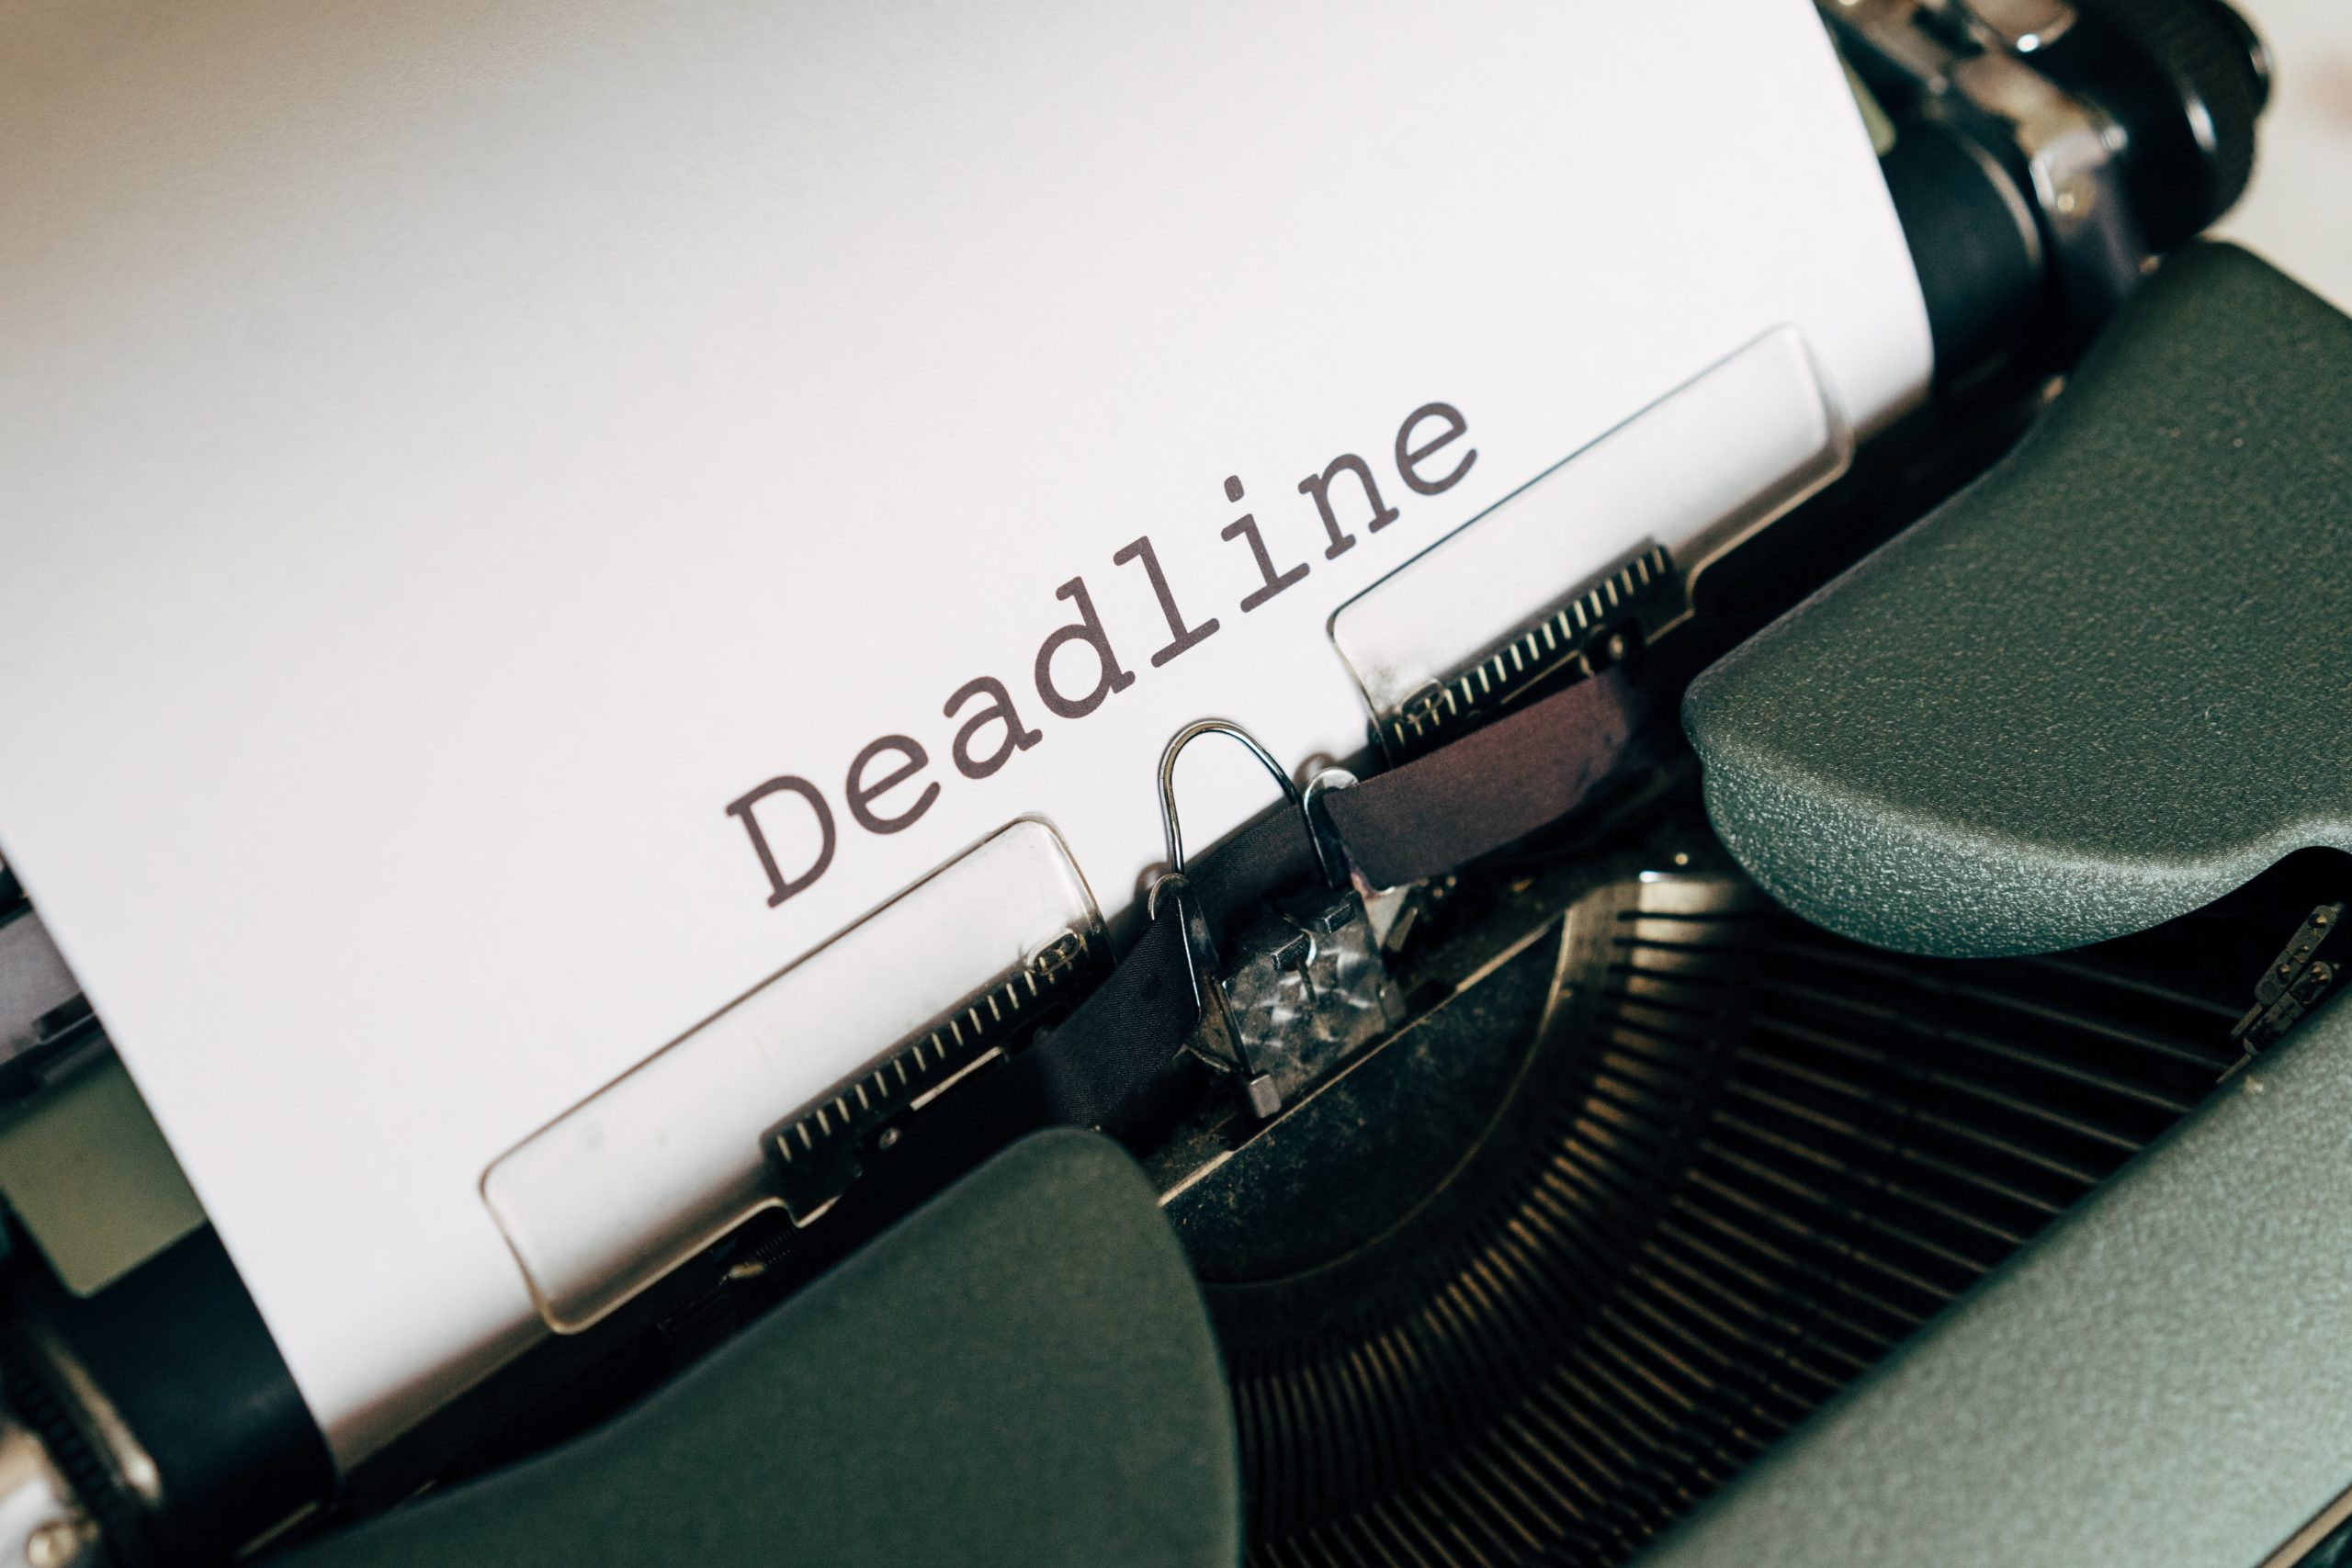 GERMANY: KassenSichV (TSE) deadline postponed! New date is set to March 31, 2021 (previously September 30, 2020). Regardless of extension...